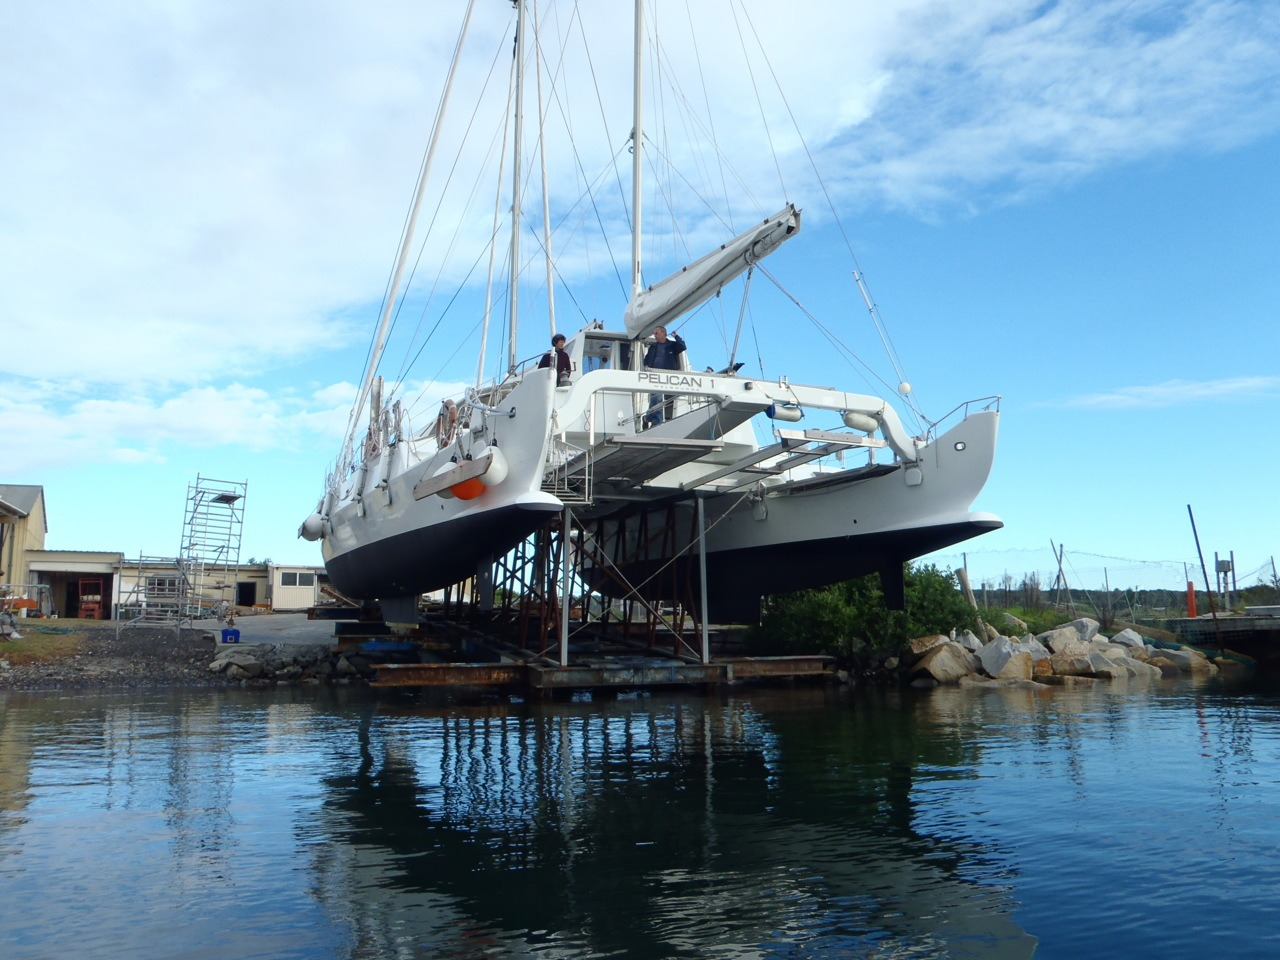 Pelican1 on the slip in Bermagui. Great way to look at her beautiful belly! She is now back in the water complete with brand new propellors.